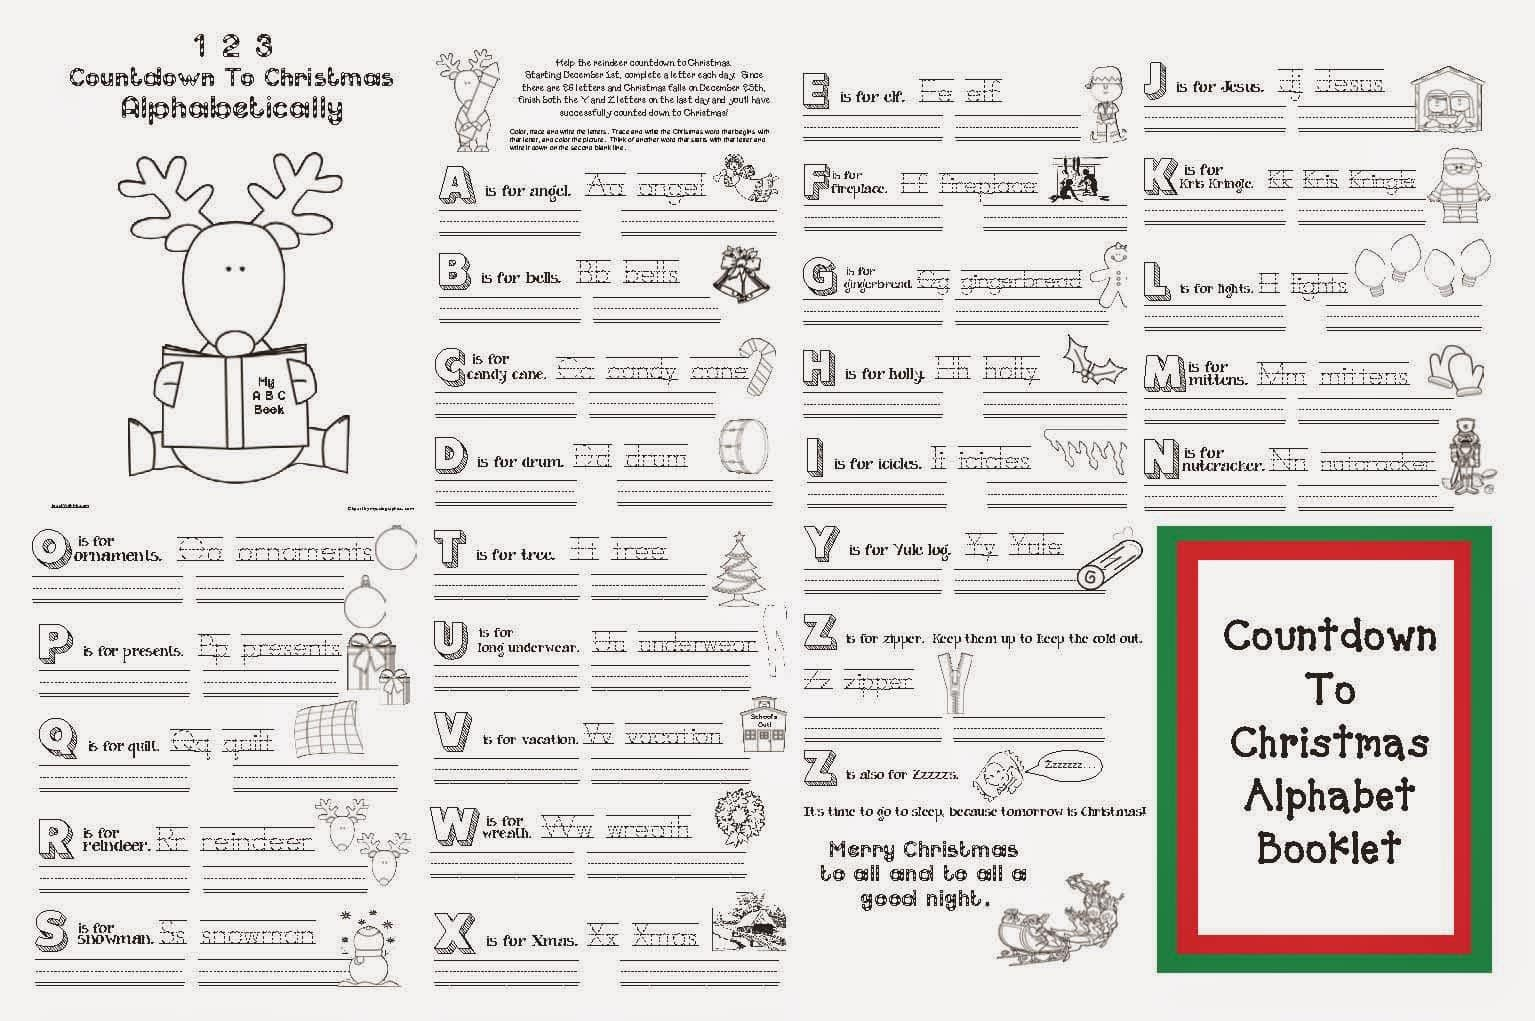 1 2 3 countdown to christmas alphabetically classroom freebies